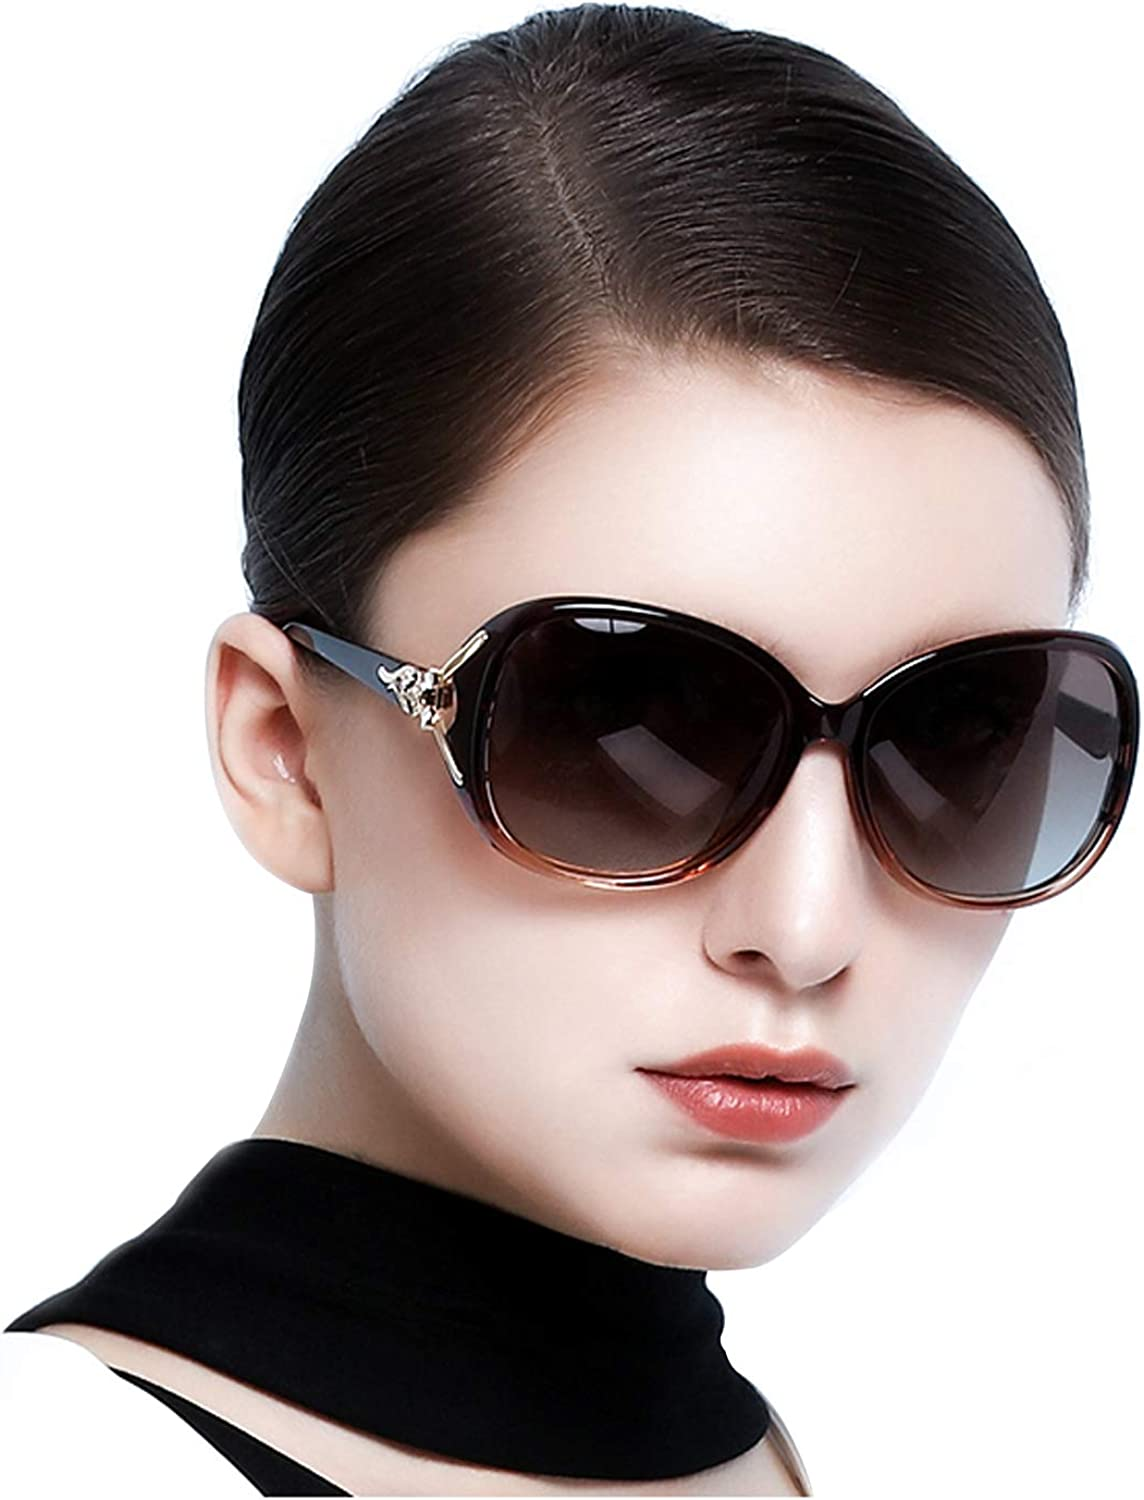 Women Sunglasses Oversized Glasses Designer Sun Glass Fashion Polarized Eyewear